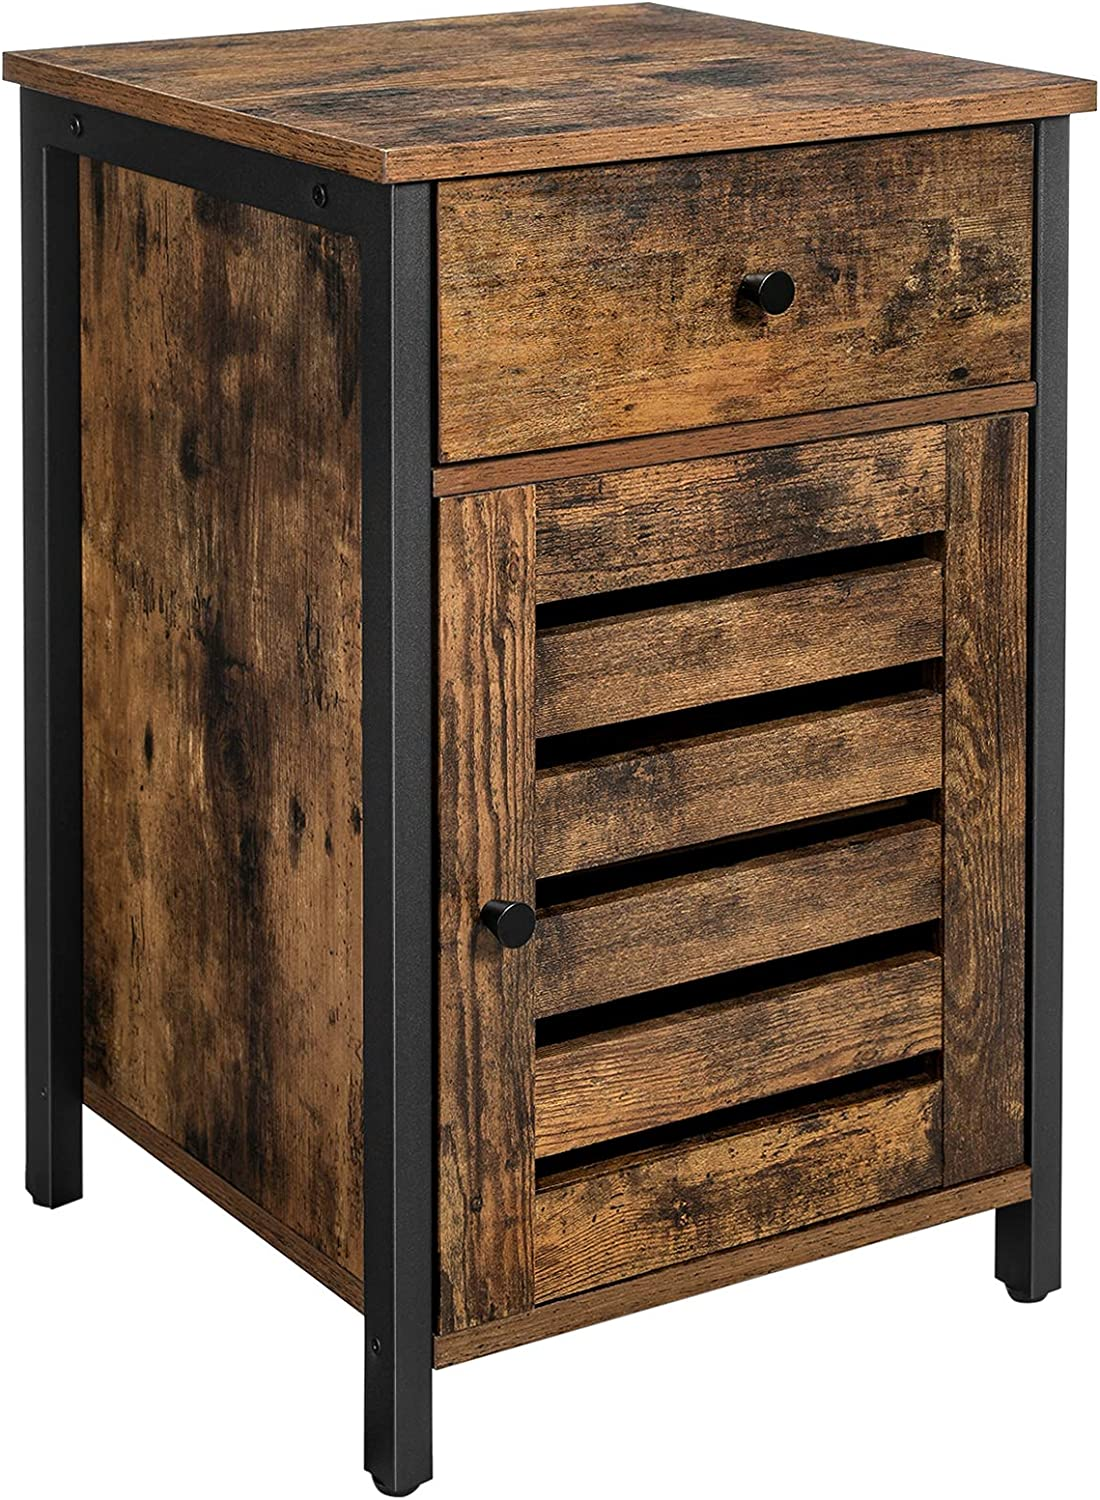 VASAGLE Nightstand, Side Table with Drawer, Shutter Door, End Table with Adjustable Shelf, Metal Frame, Industrial Style, Rustic Brown and Black ULET063B01: Kitchen & Dining